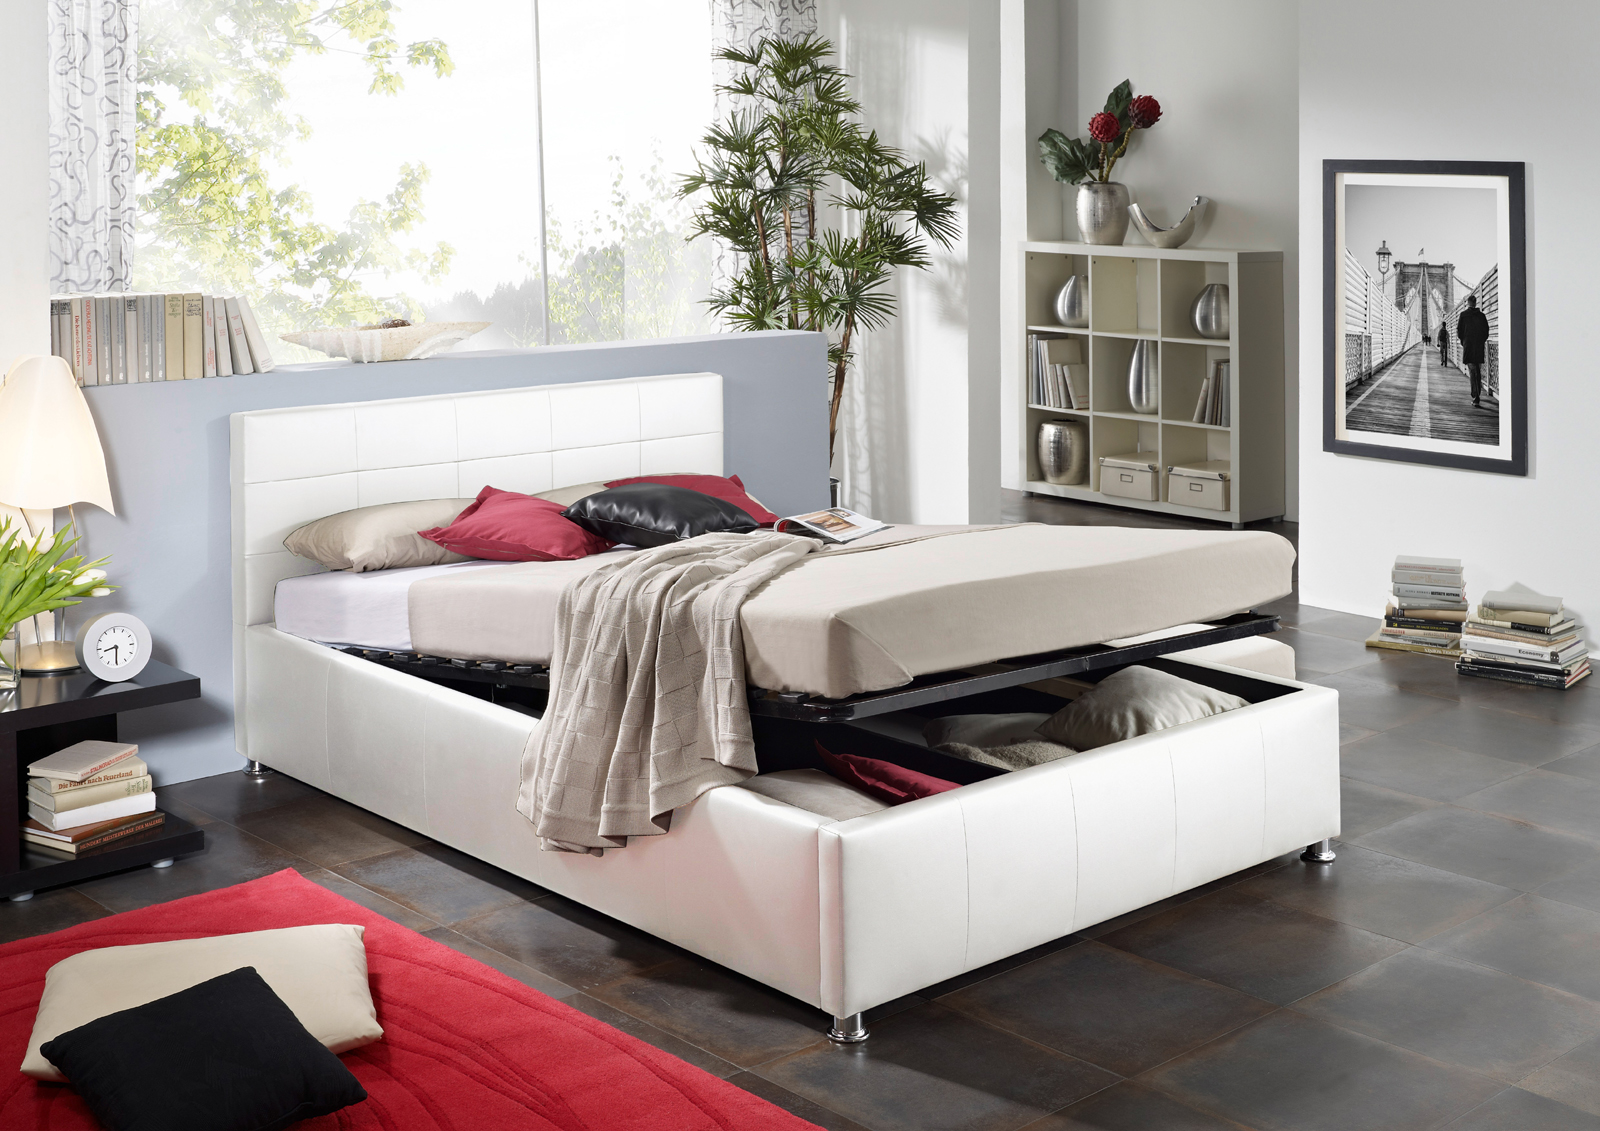 sam design bett 100 x 200 cm wei kira bettkasten auf lager. Black Bedroom Furniture Sets. Home Design Ideas